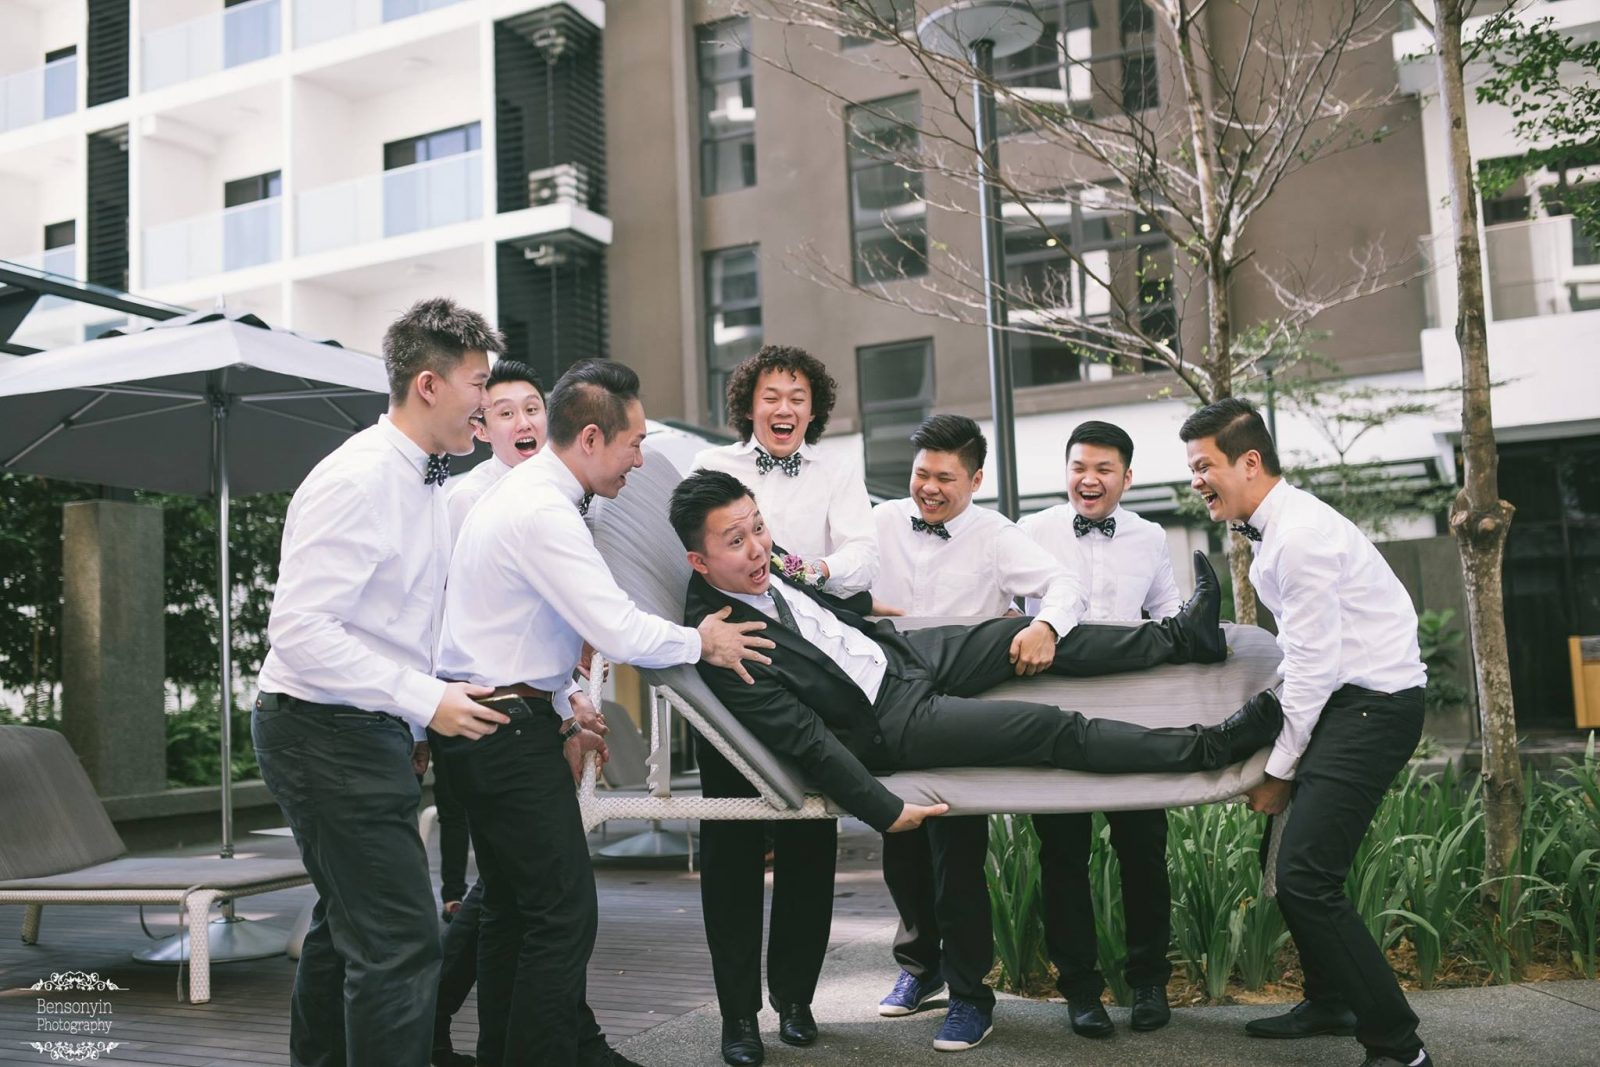 Wedding groomsmen - wedding photography by Benson Yin